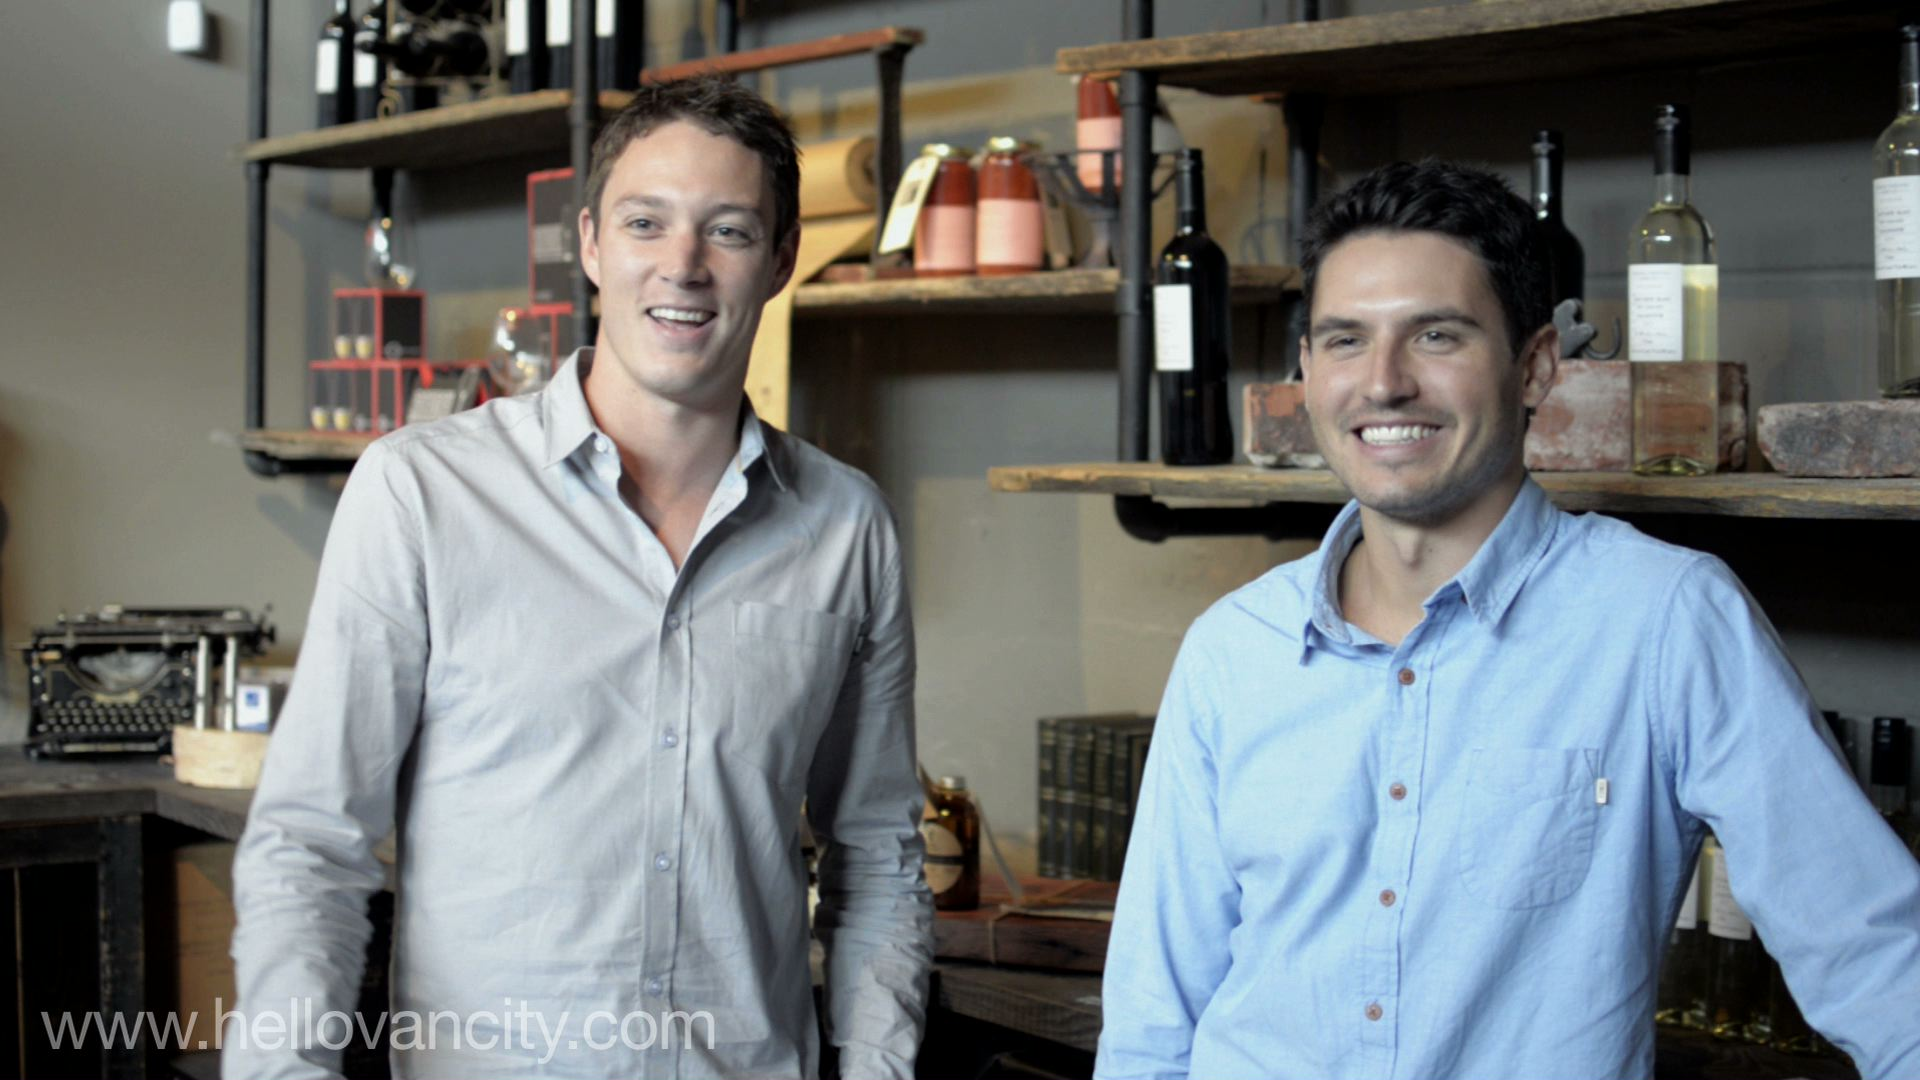 Mike Macquisten & Steve Thorp, Co-Founders of Vancouver Urban Winery